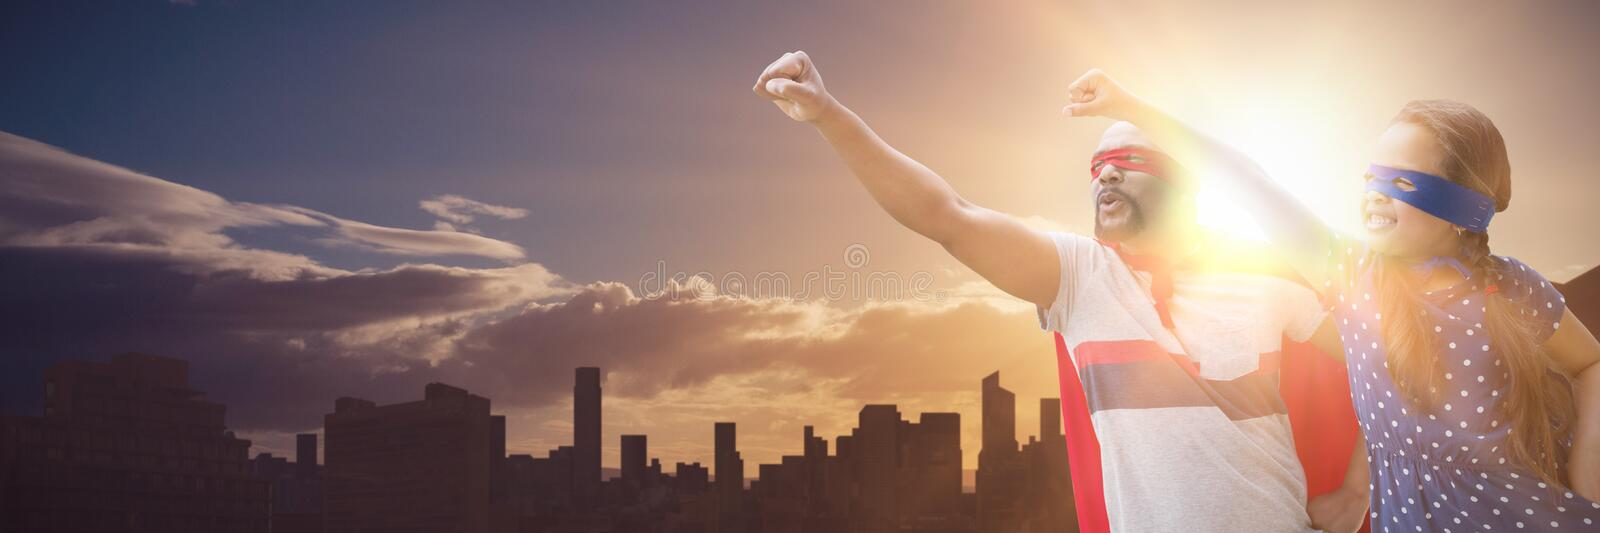 Composite image of father and daughter pretending to be superhero. Father and daughter pretending to be superhero against picture of city by sunrise royalty free stock image